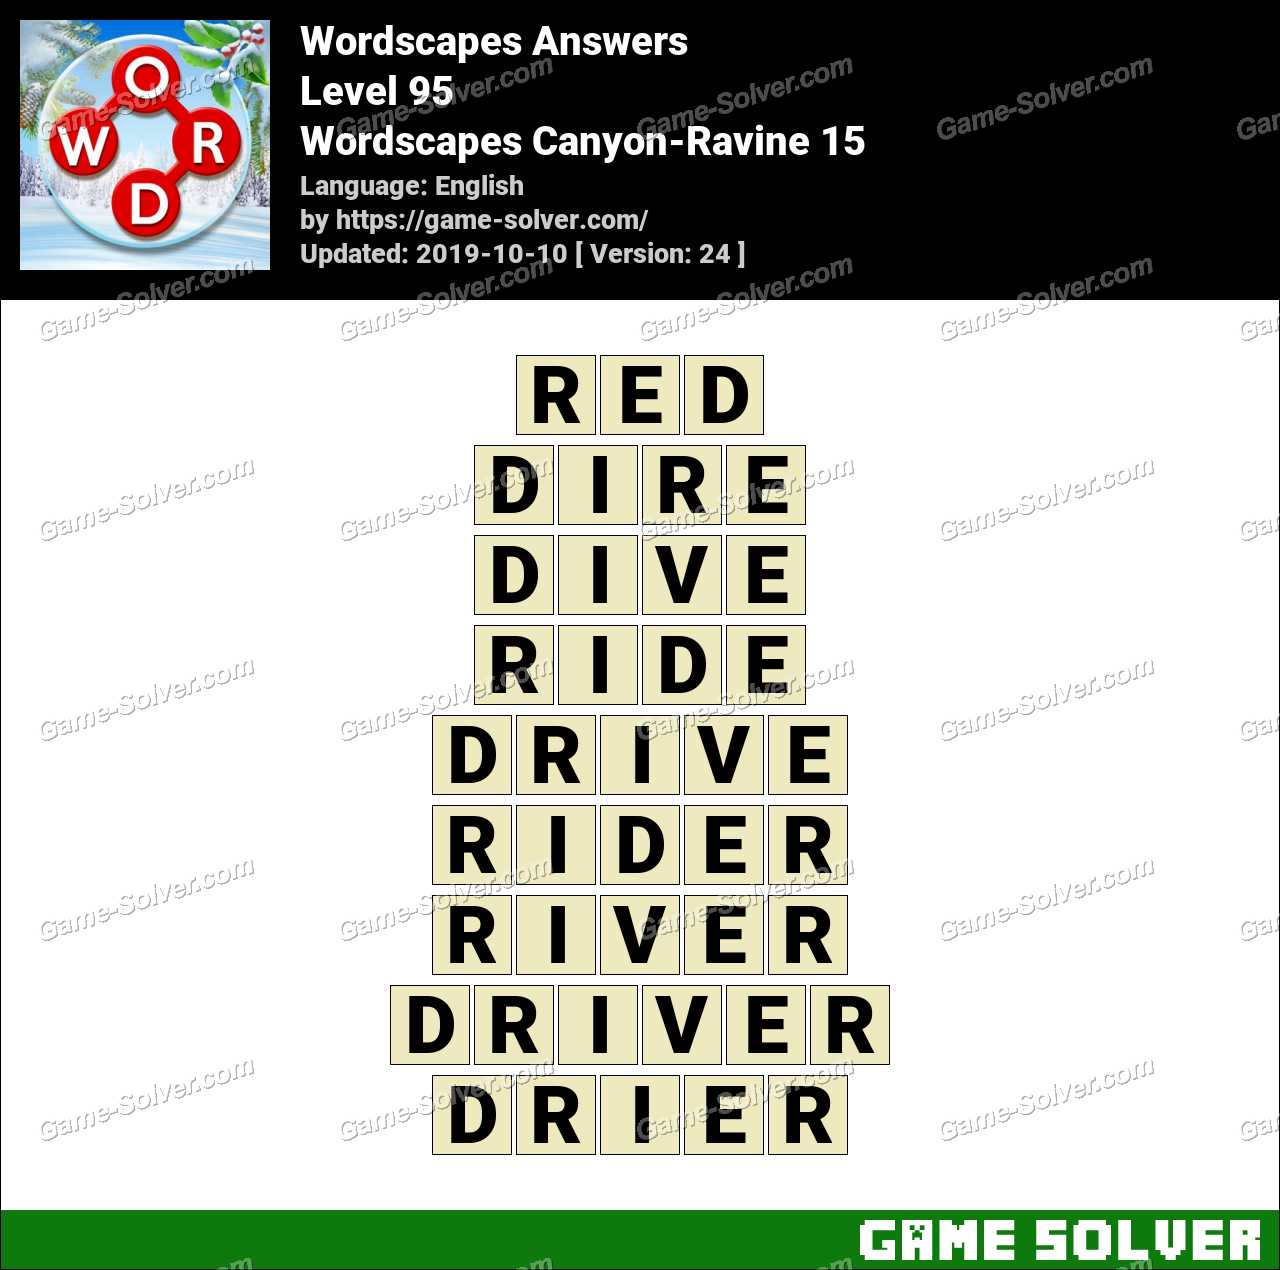 Wordscapes Canyon-Ravine 15 Answers